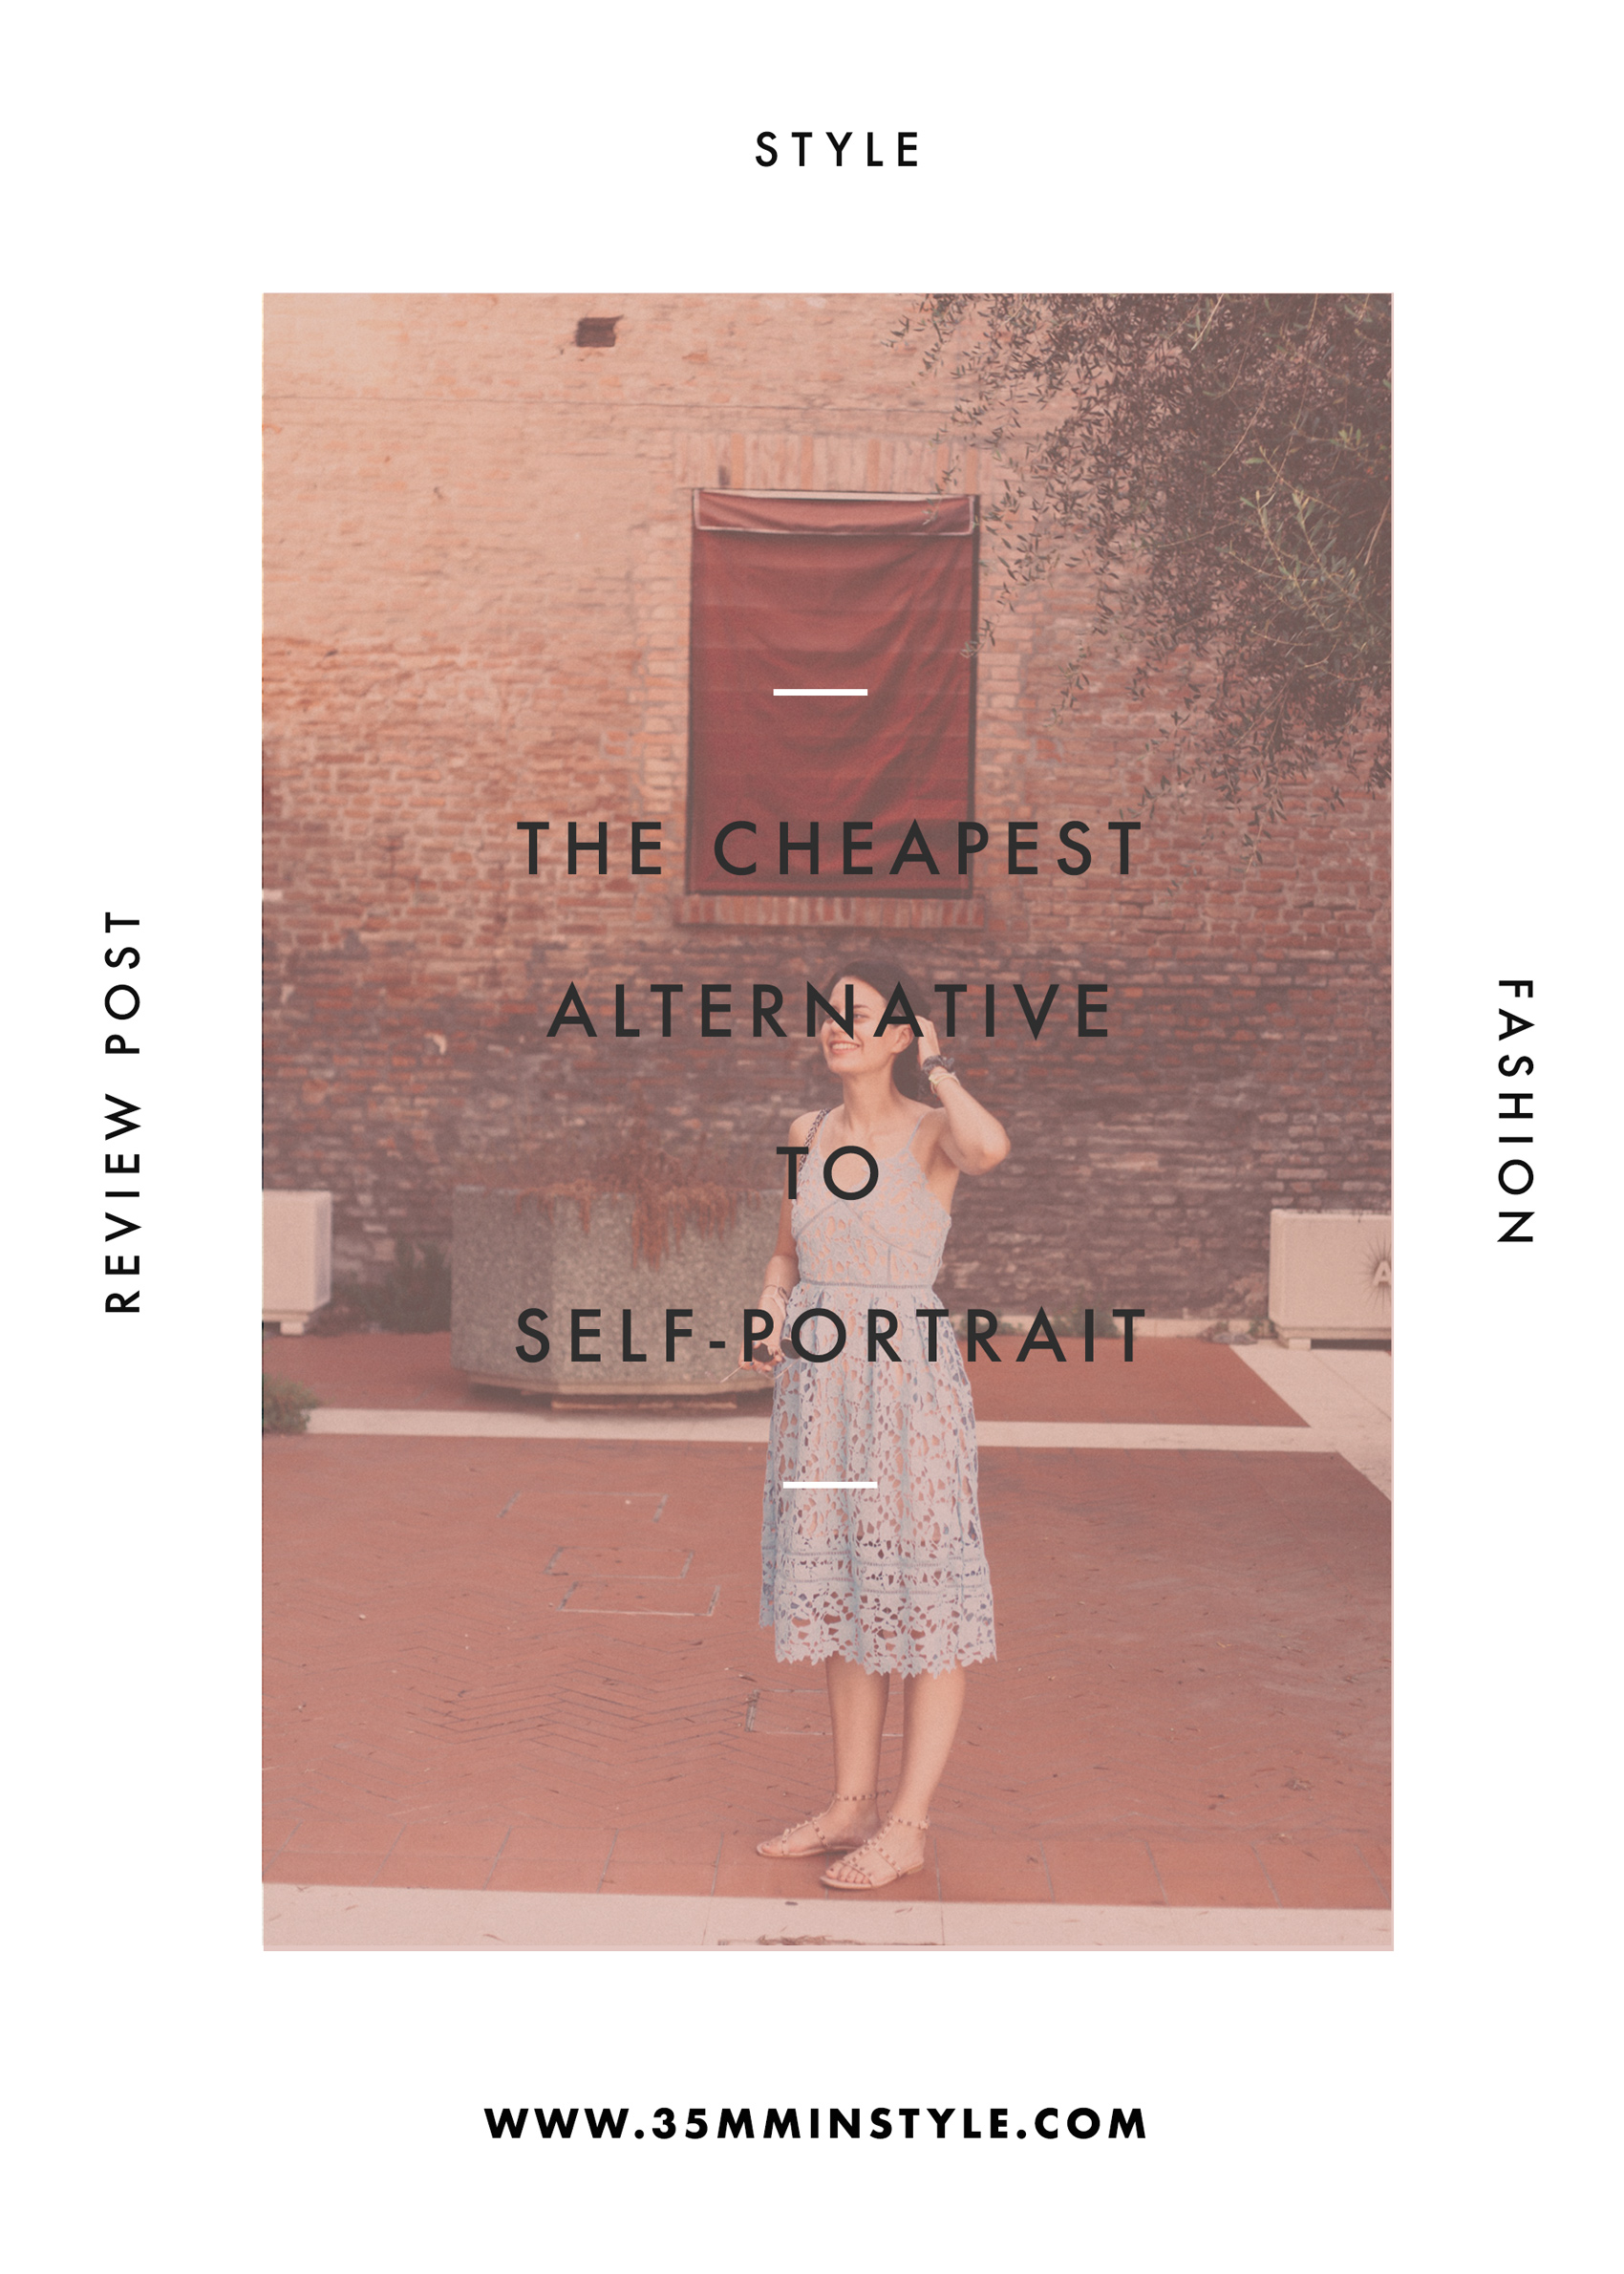 The Cheapest Alternative to Self-Portrait